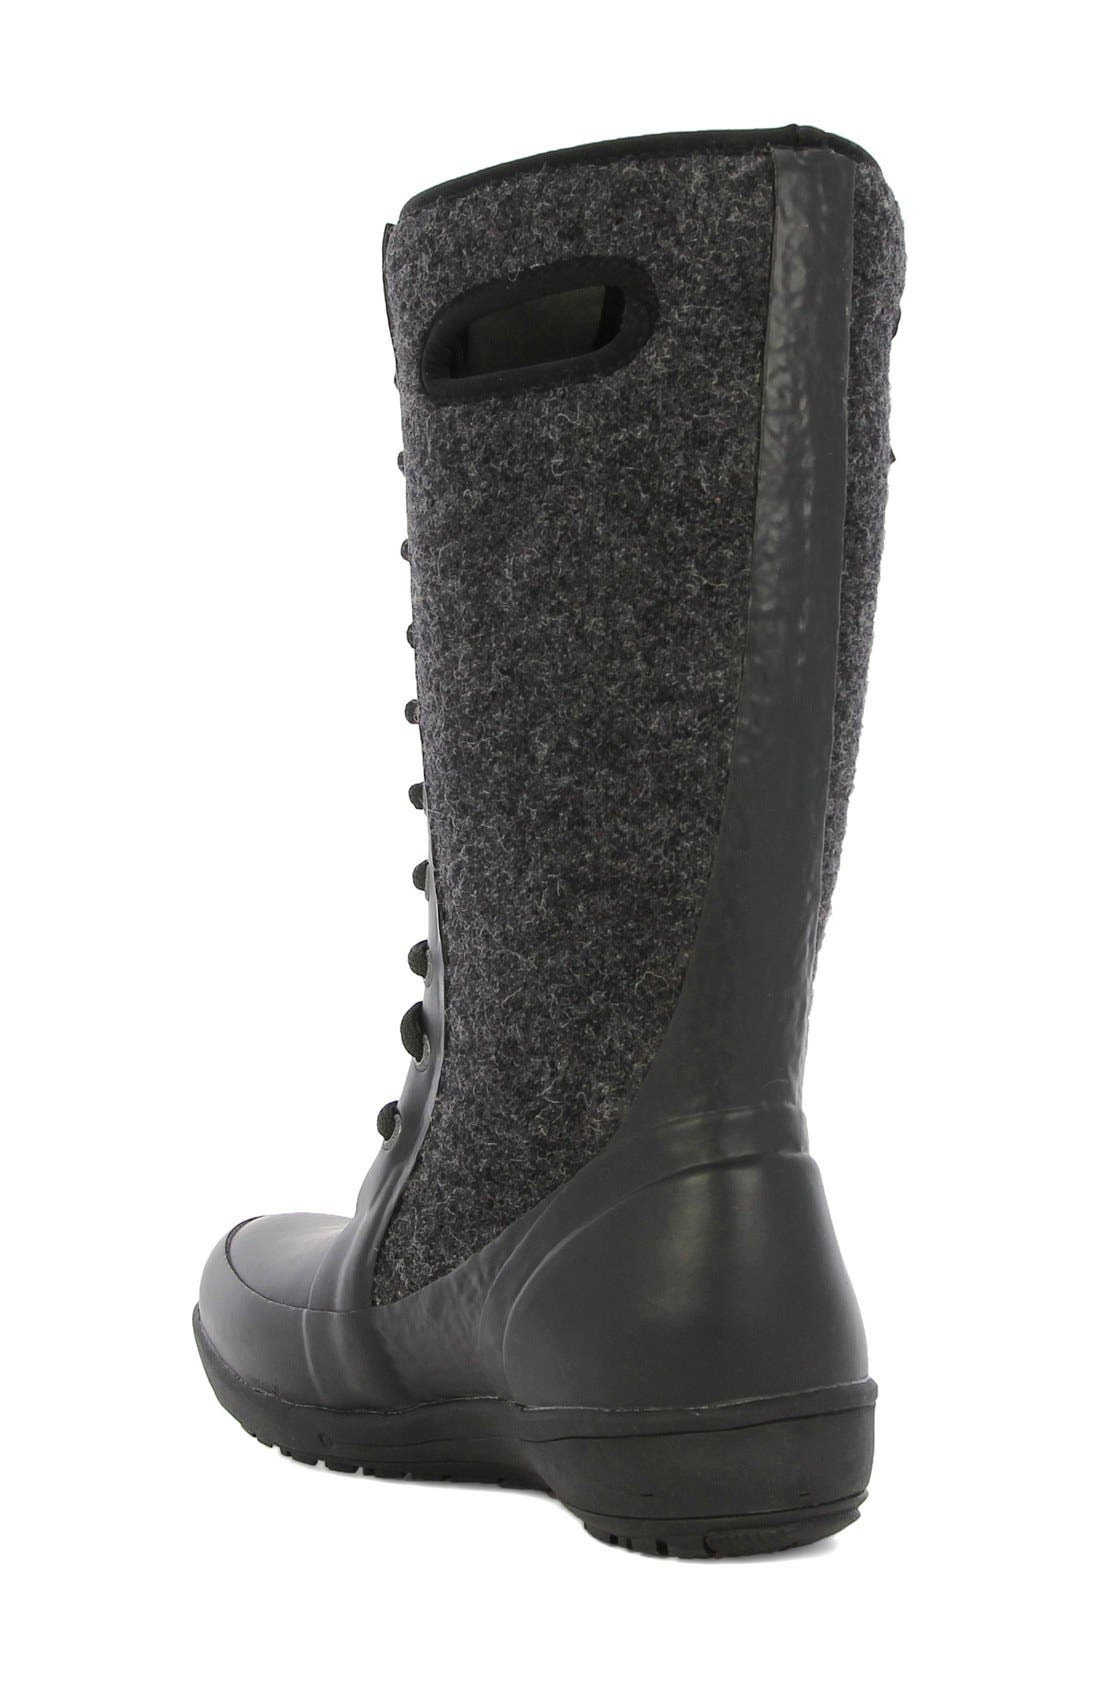 'Cami' Knee High Waterproof Boot,                             Alternate thumbnail 2, color,                             Black Multi Wool